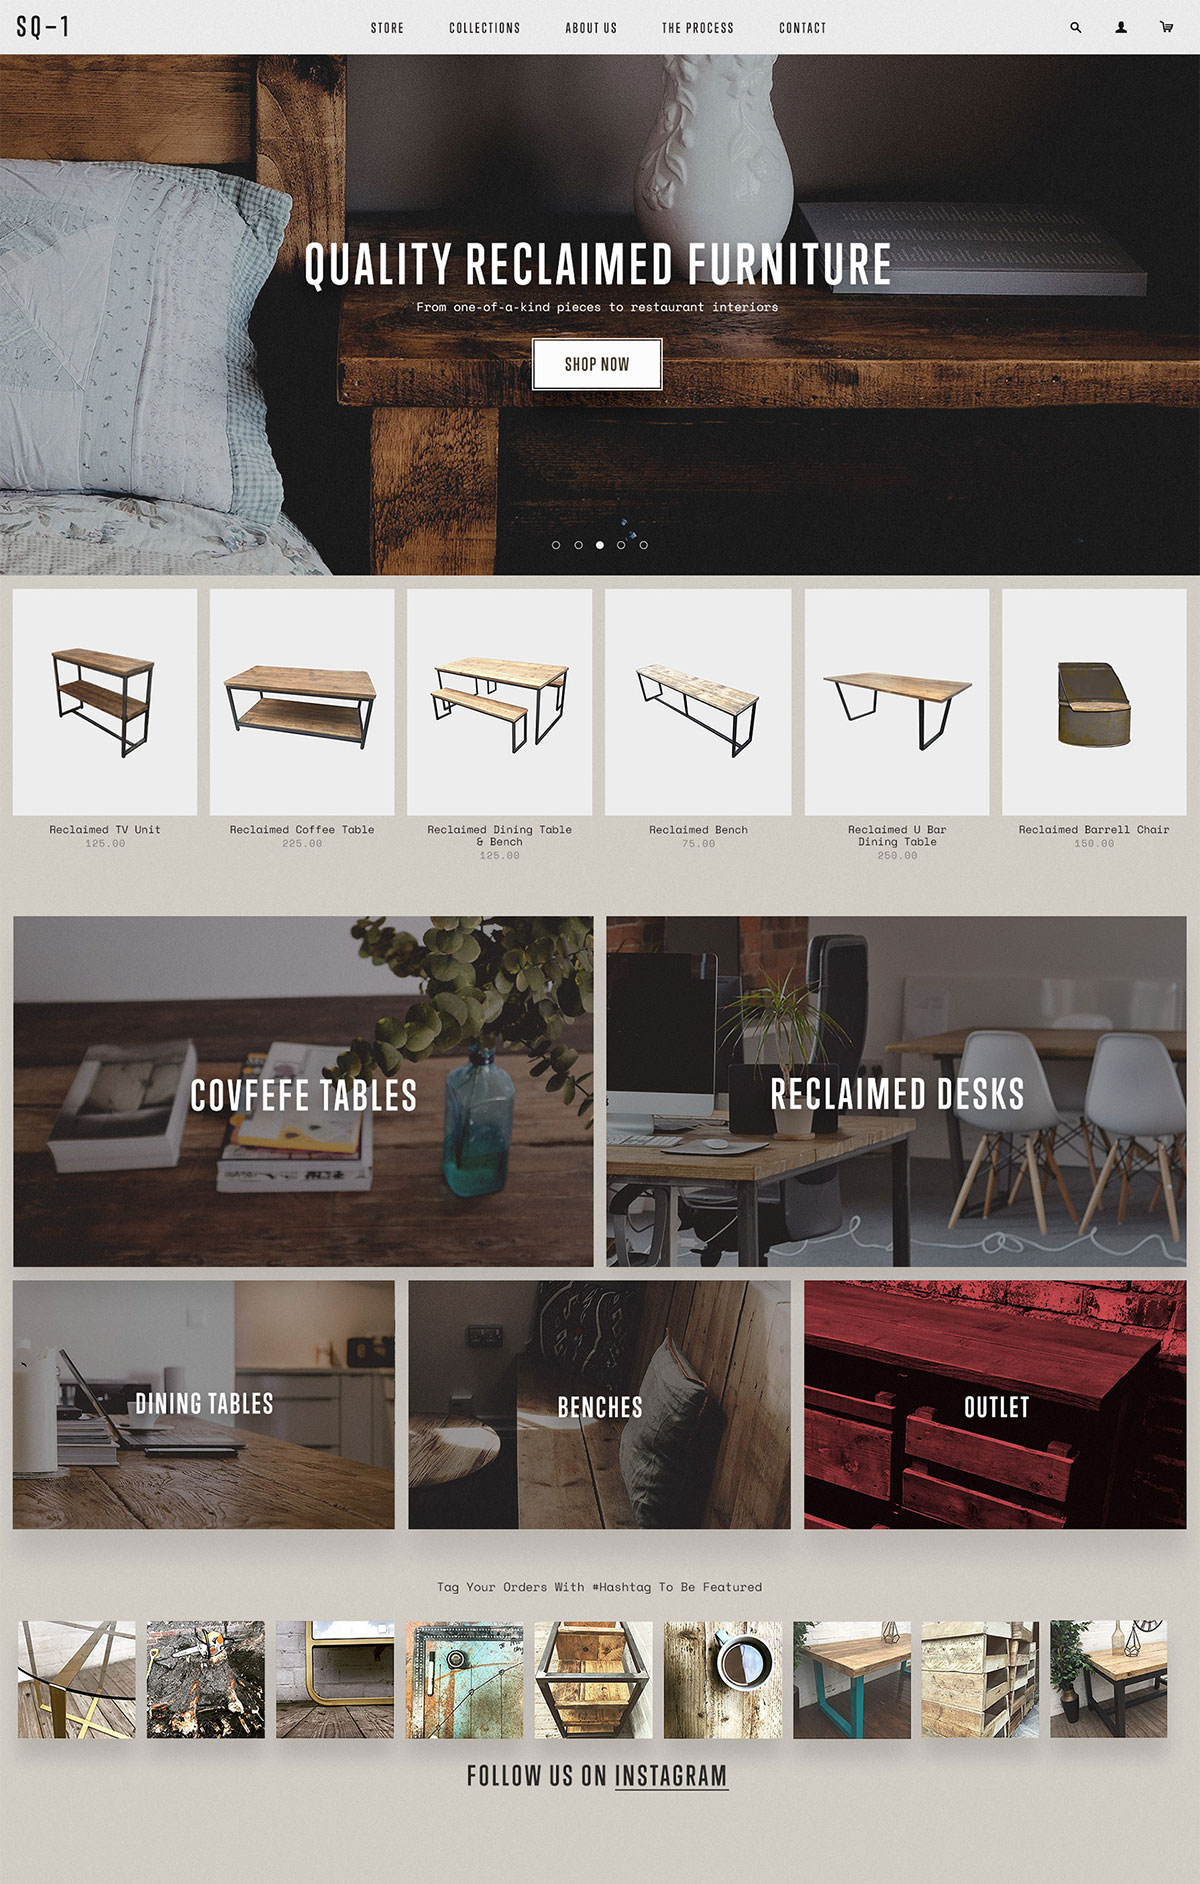 Reclaimed Furniture Homepage UI by Olly Sorsby